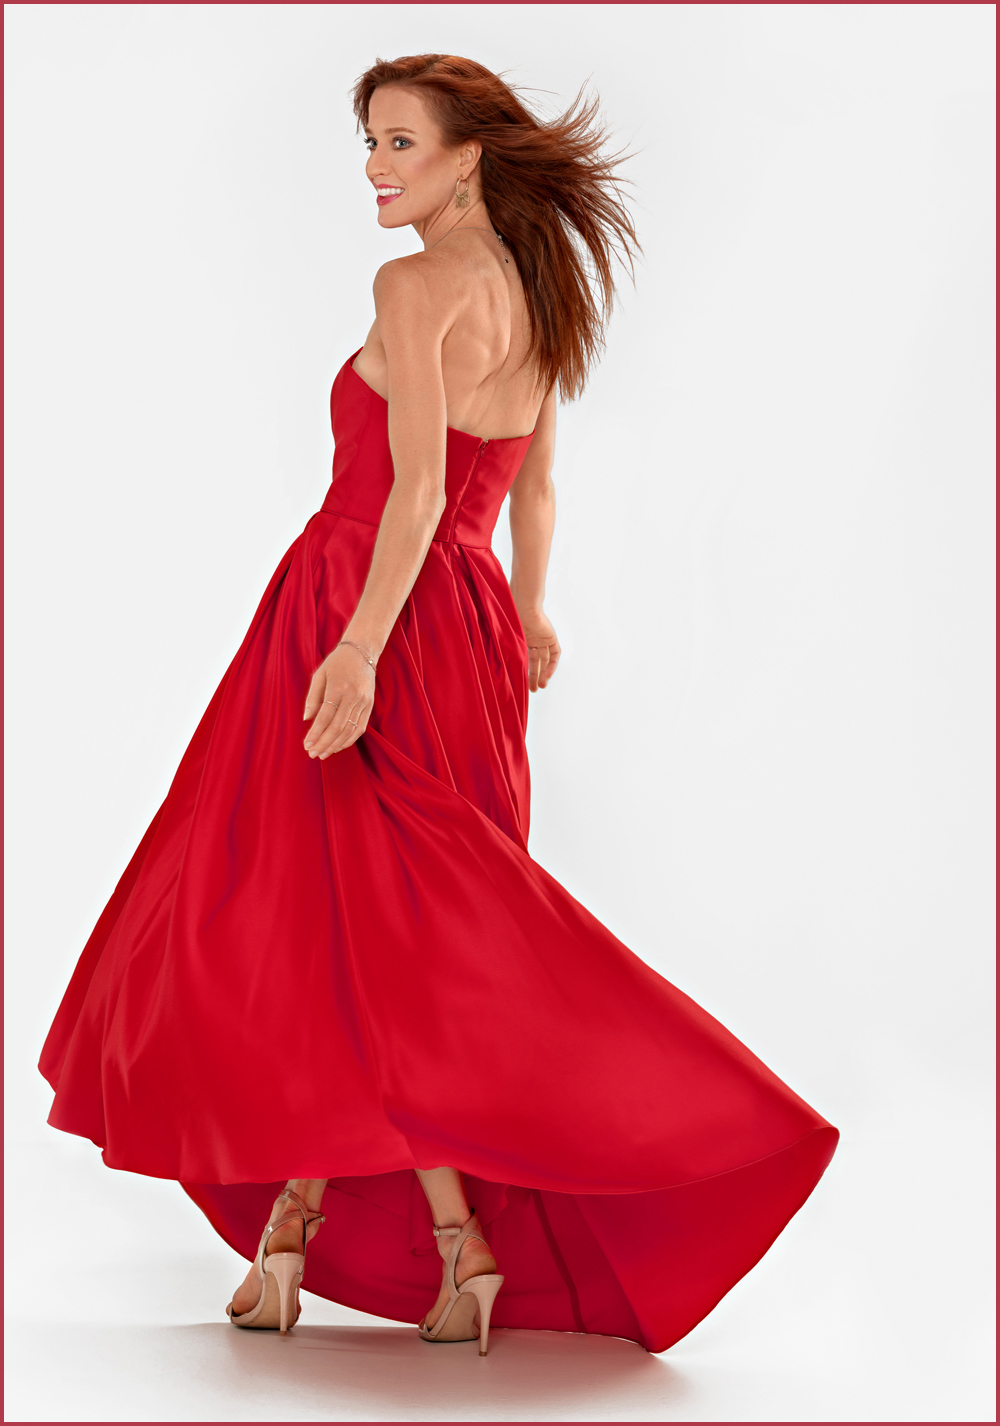 model in red high fashion dress